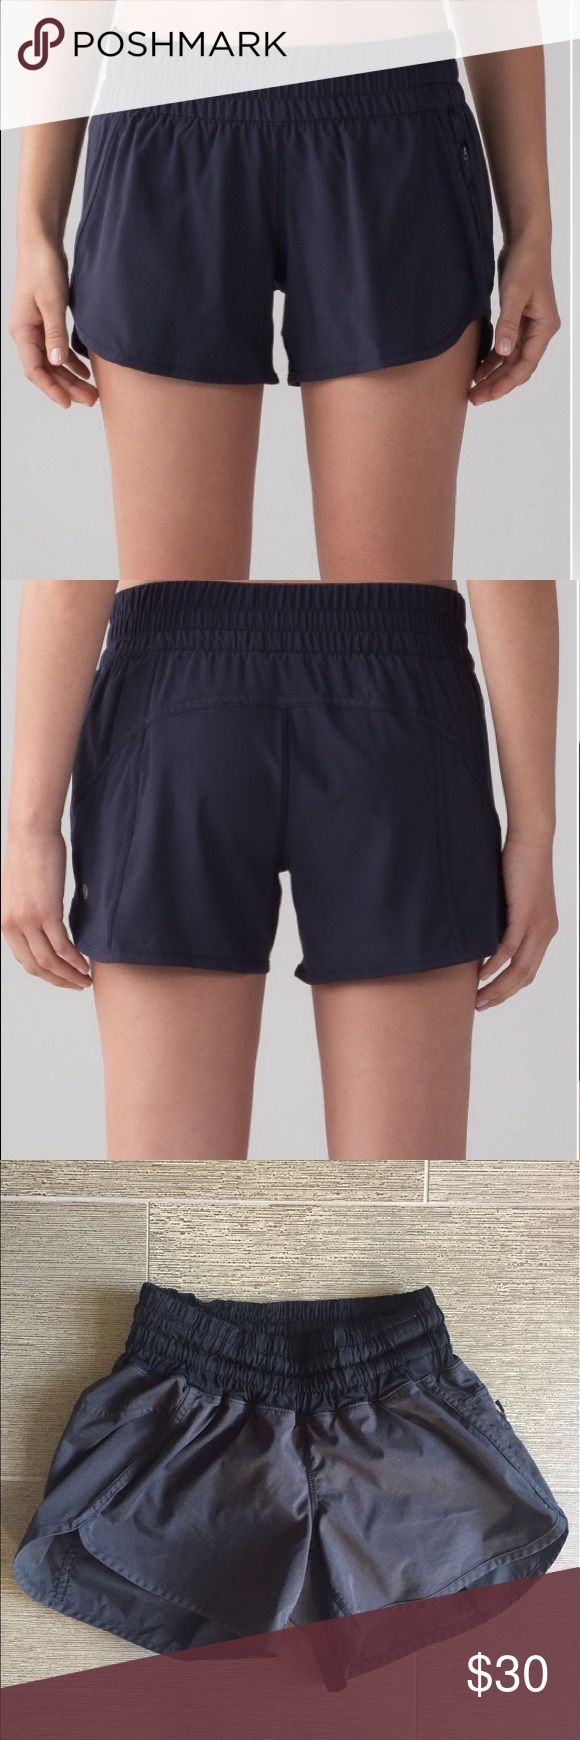 Lululemon black shorts Lululemon run for the hills roomy run shorts. Four way stretch, sweat wicking and lightweight. These shorts are lined and have a side zip pocket. Perfect for running or working out. There are some stains on the front right. Please see pictures. I think it's paint. Sold as is. Stock photos for reference only. Still have a lot of life in them. Stains are not noticeable unless you are close up lululemon athletica Shorts